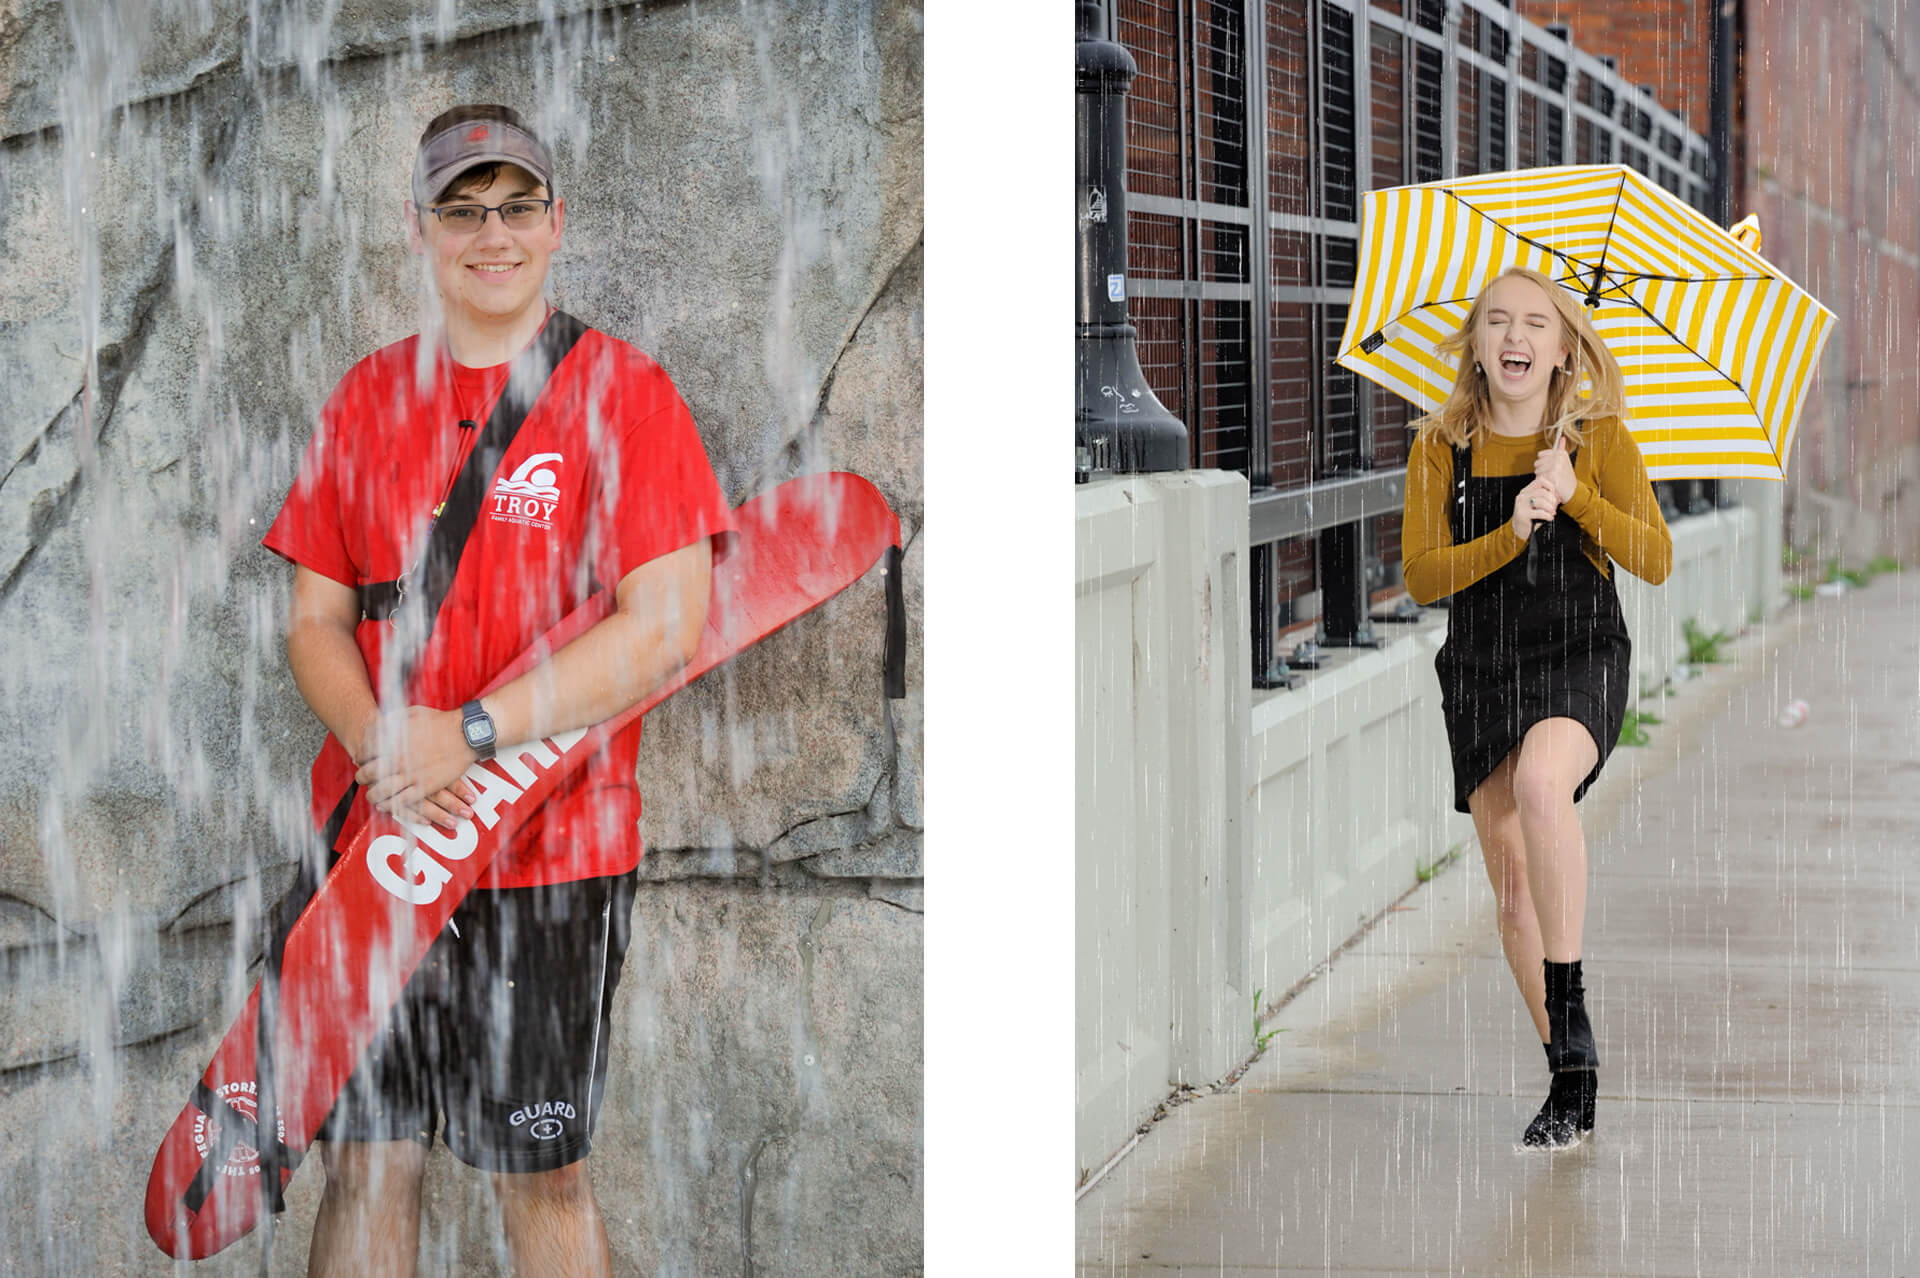 Troy High seniors who lifeguard and who don't mind getting wet for their senior photos downtown Detroit, Michigan.